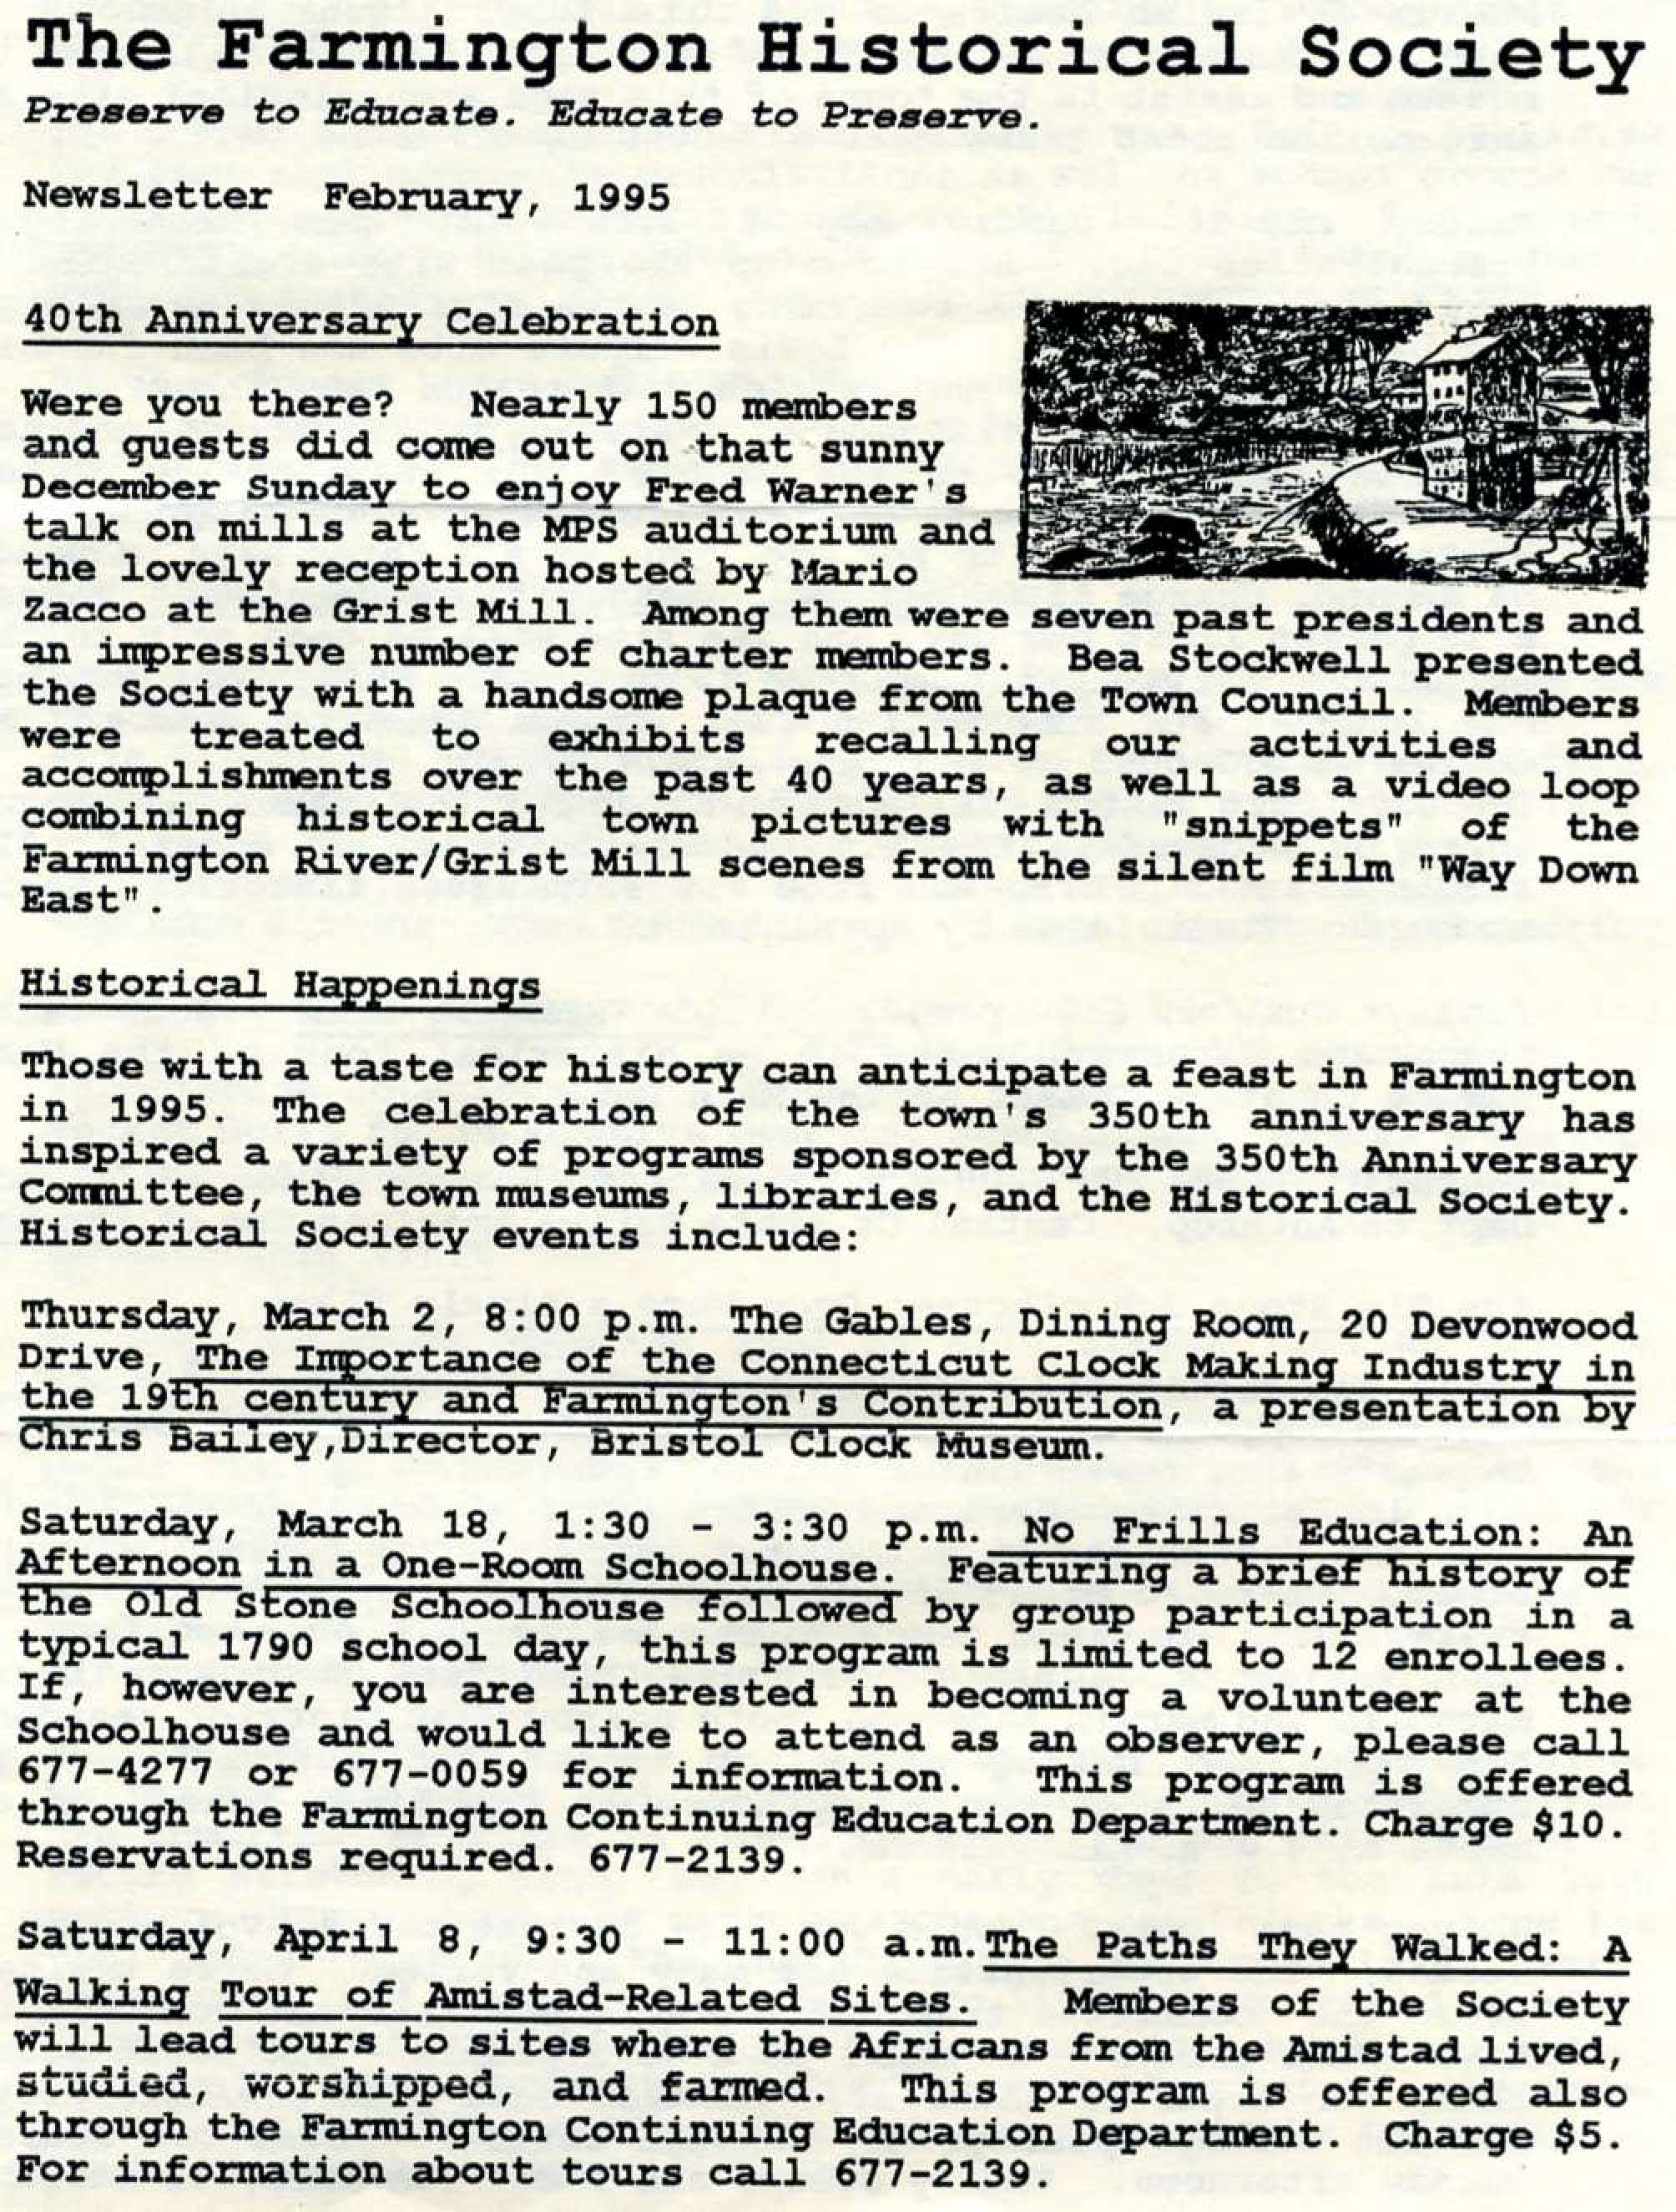 http://fhs-ct.org/1995/02/09/february-1995-newsletter/